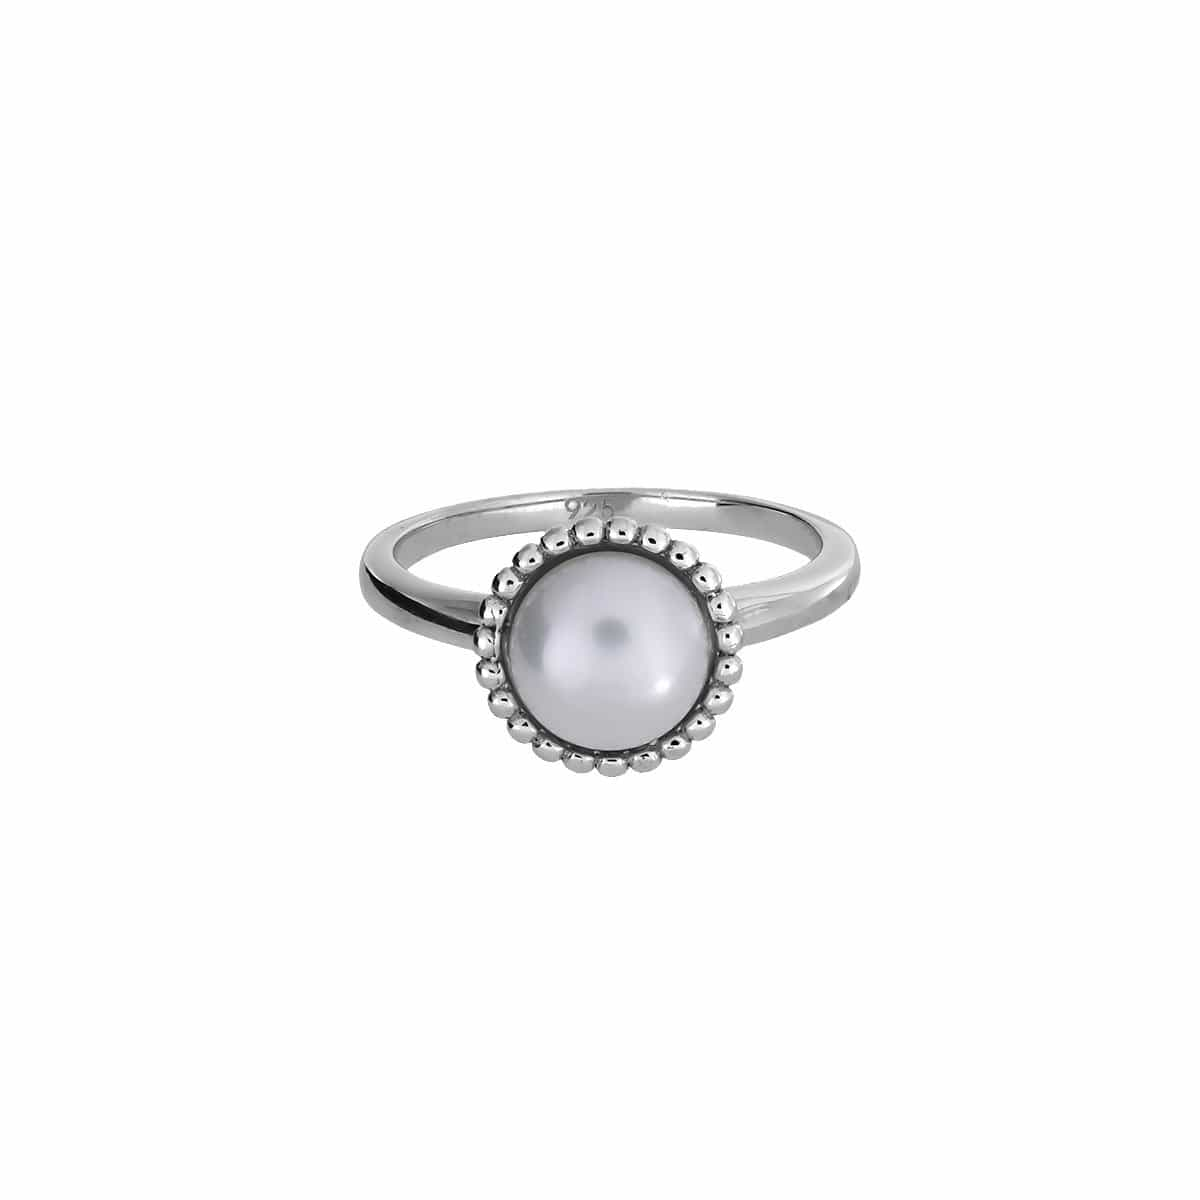 58 Silver & Pearl Beaded Edge Ring